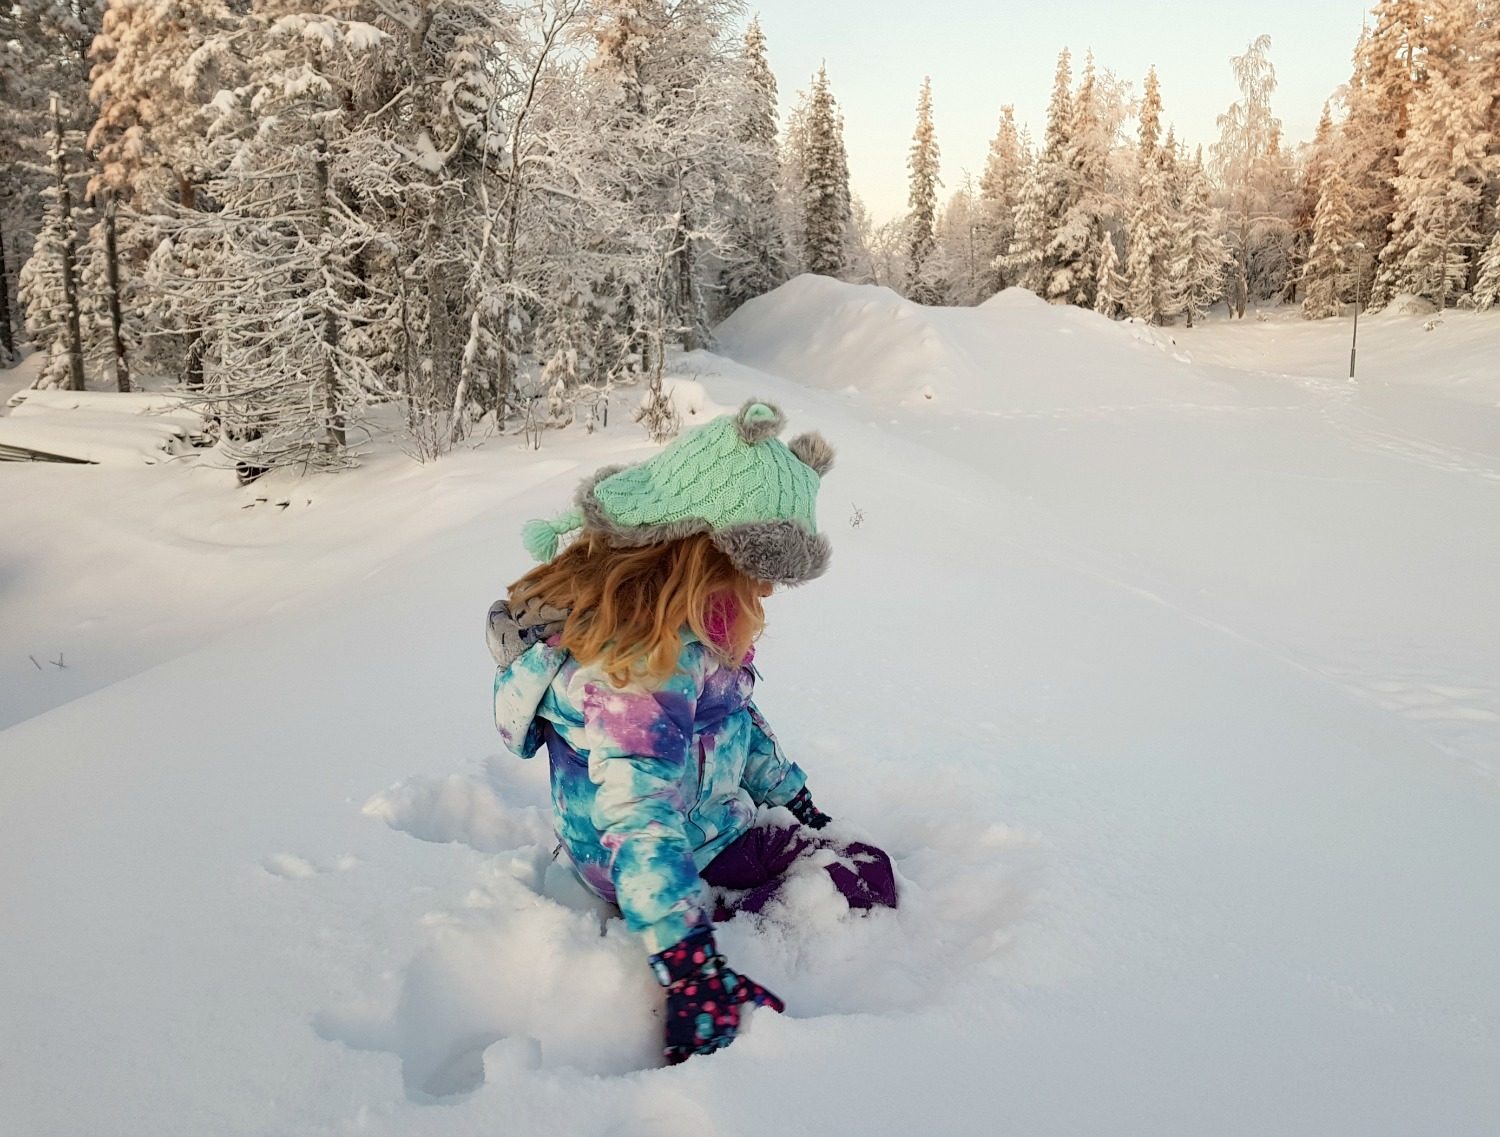 ca034245e96 My daughter in winter snow gear scoops more snow up from a drift in Lapland  -